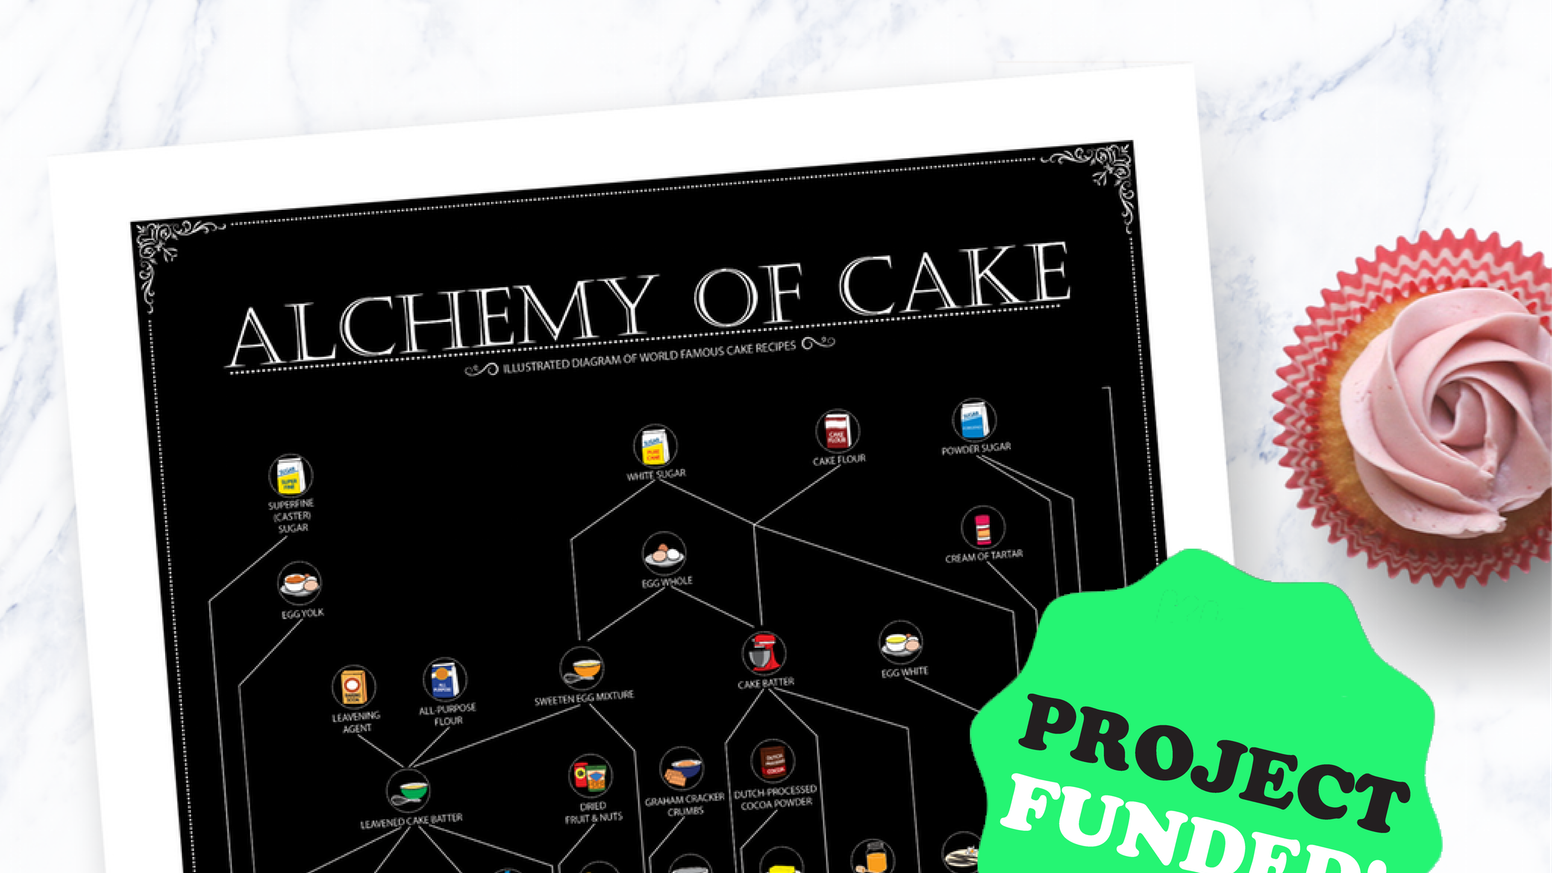 LOVE CAKES? Alchemy of Cake Illustrates What Cakes are Made Out of From Scratch Ingredients.